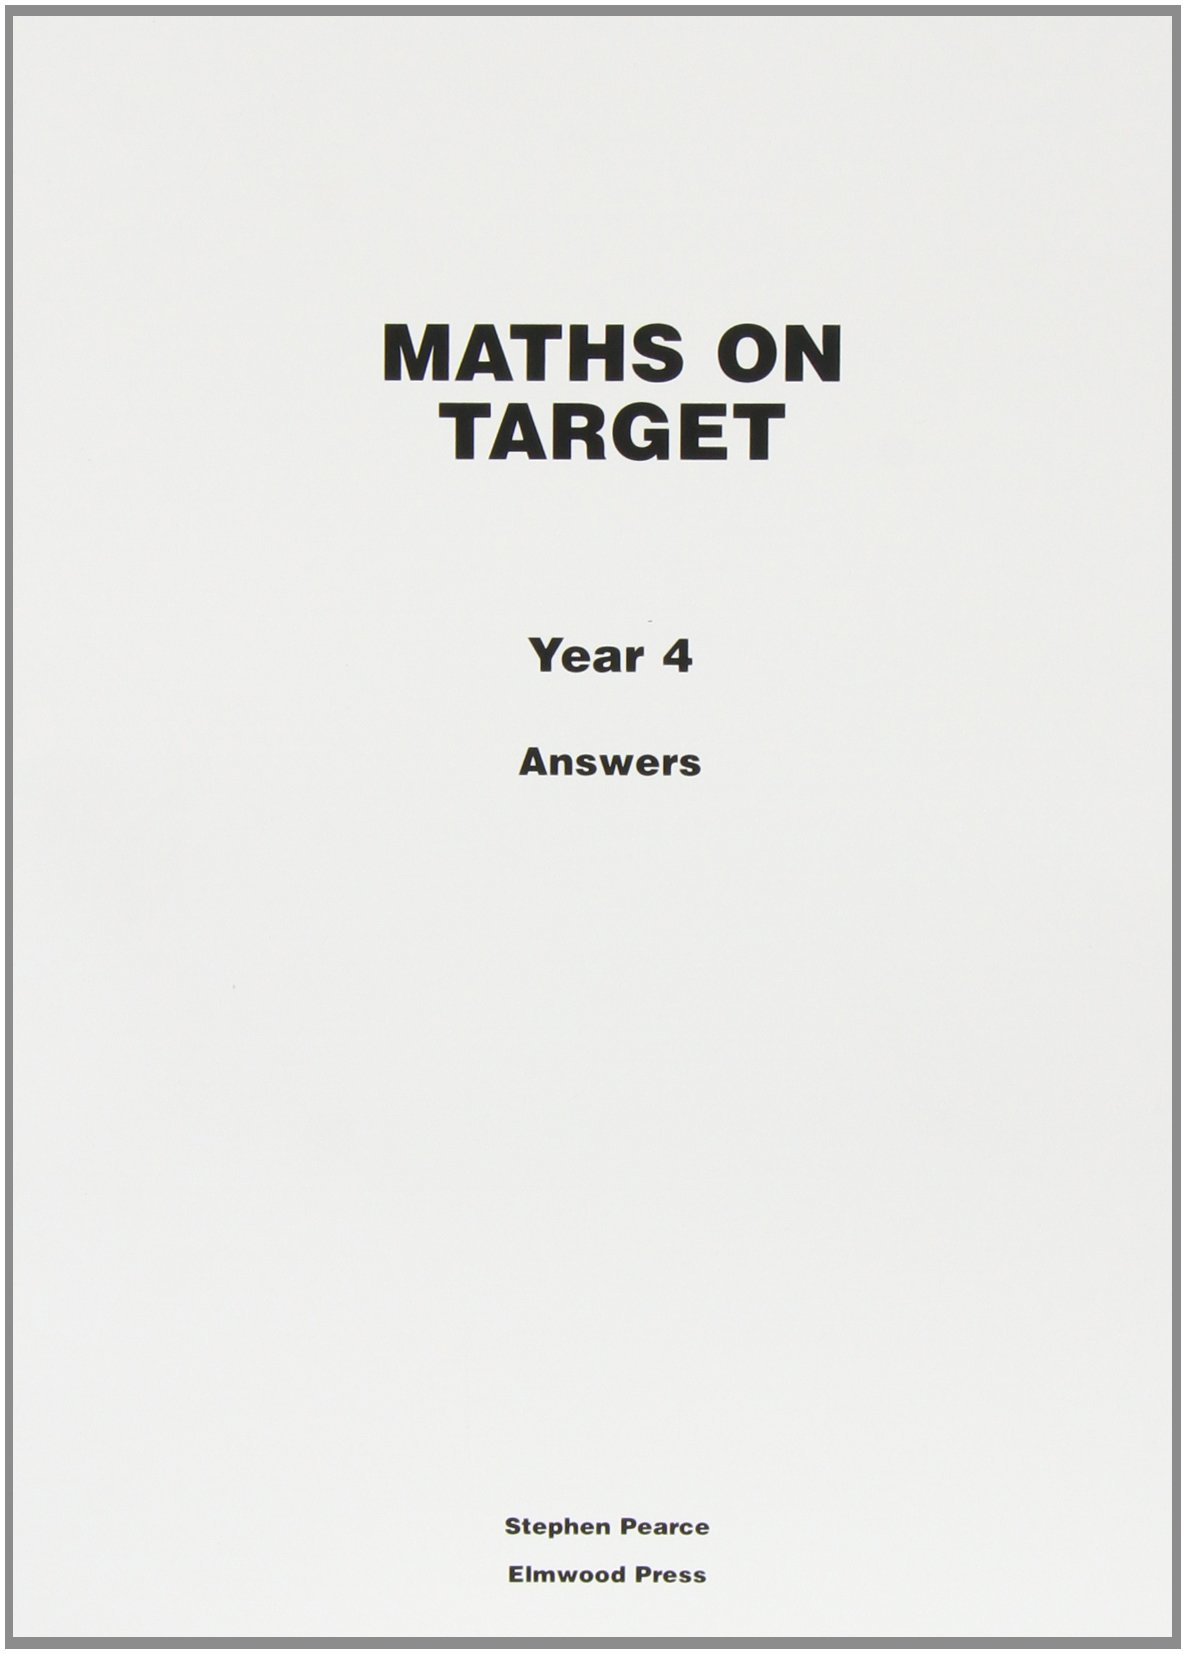 Maths on Target: Answers Year 4: Amazon.co.uk: Stephen Pearce ...